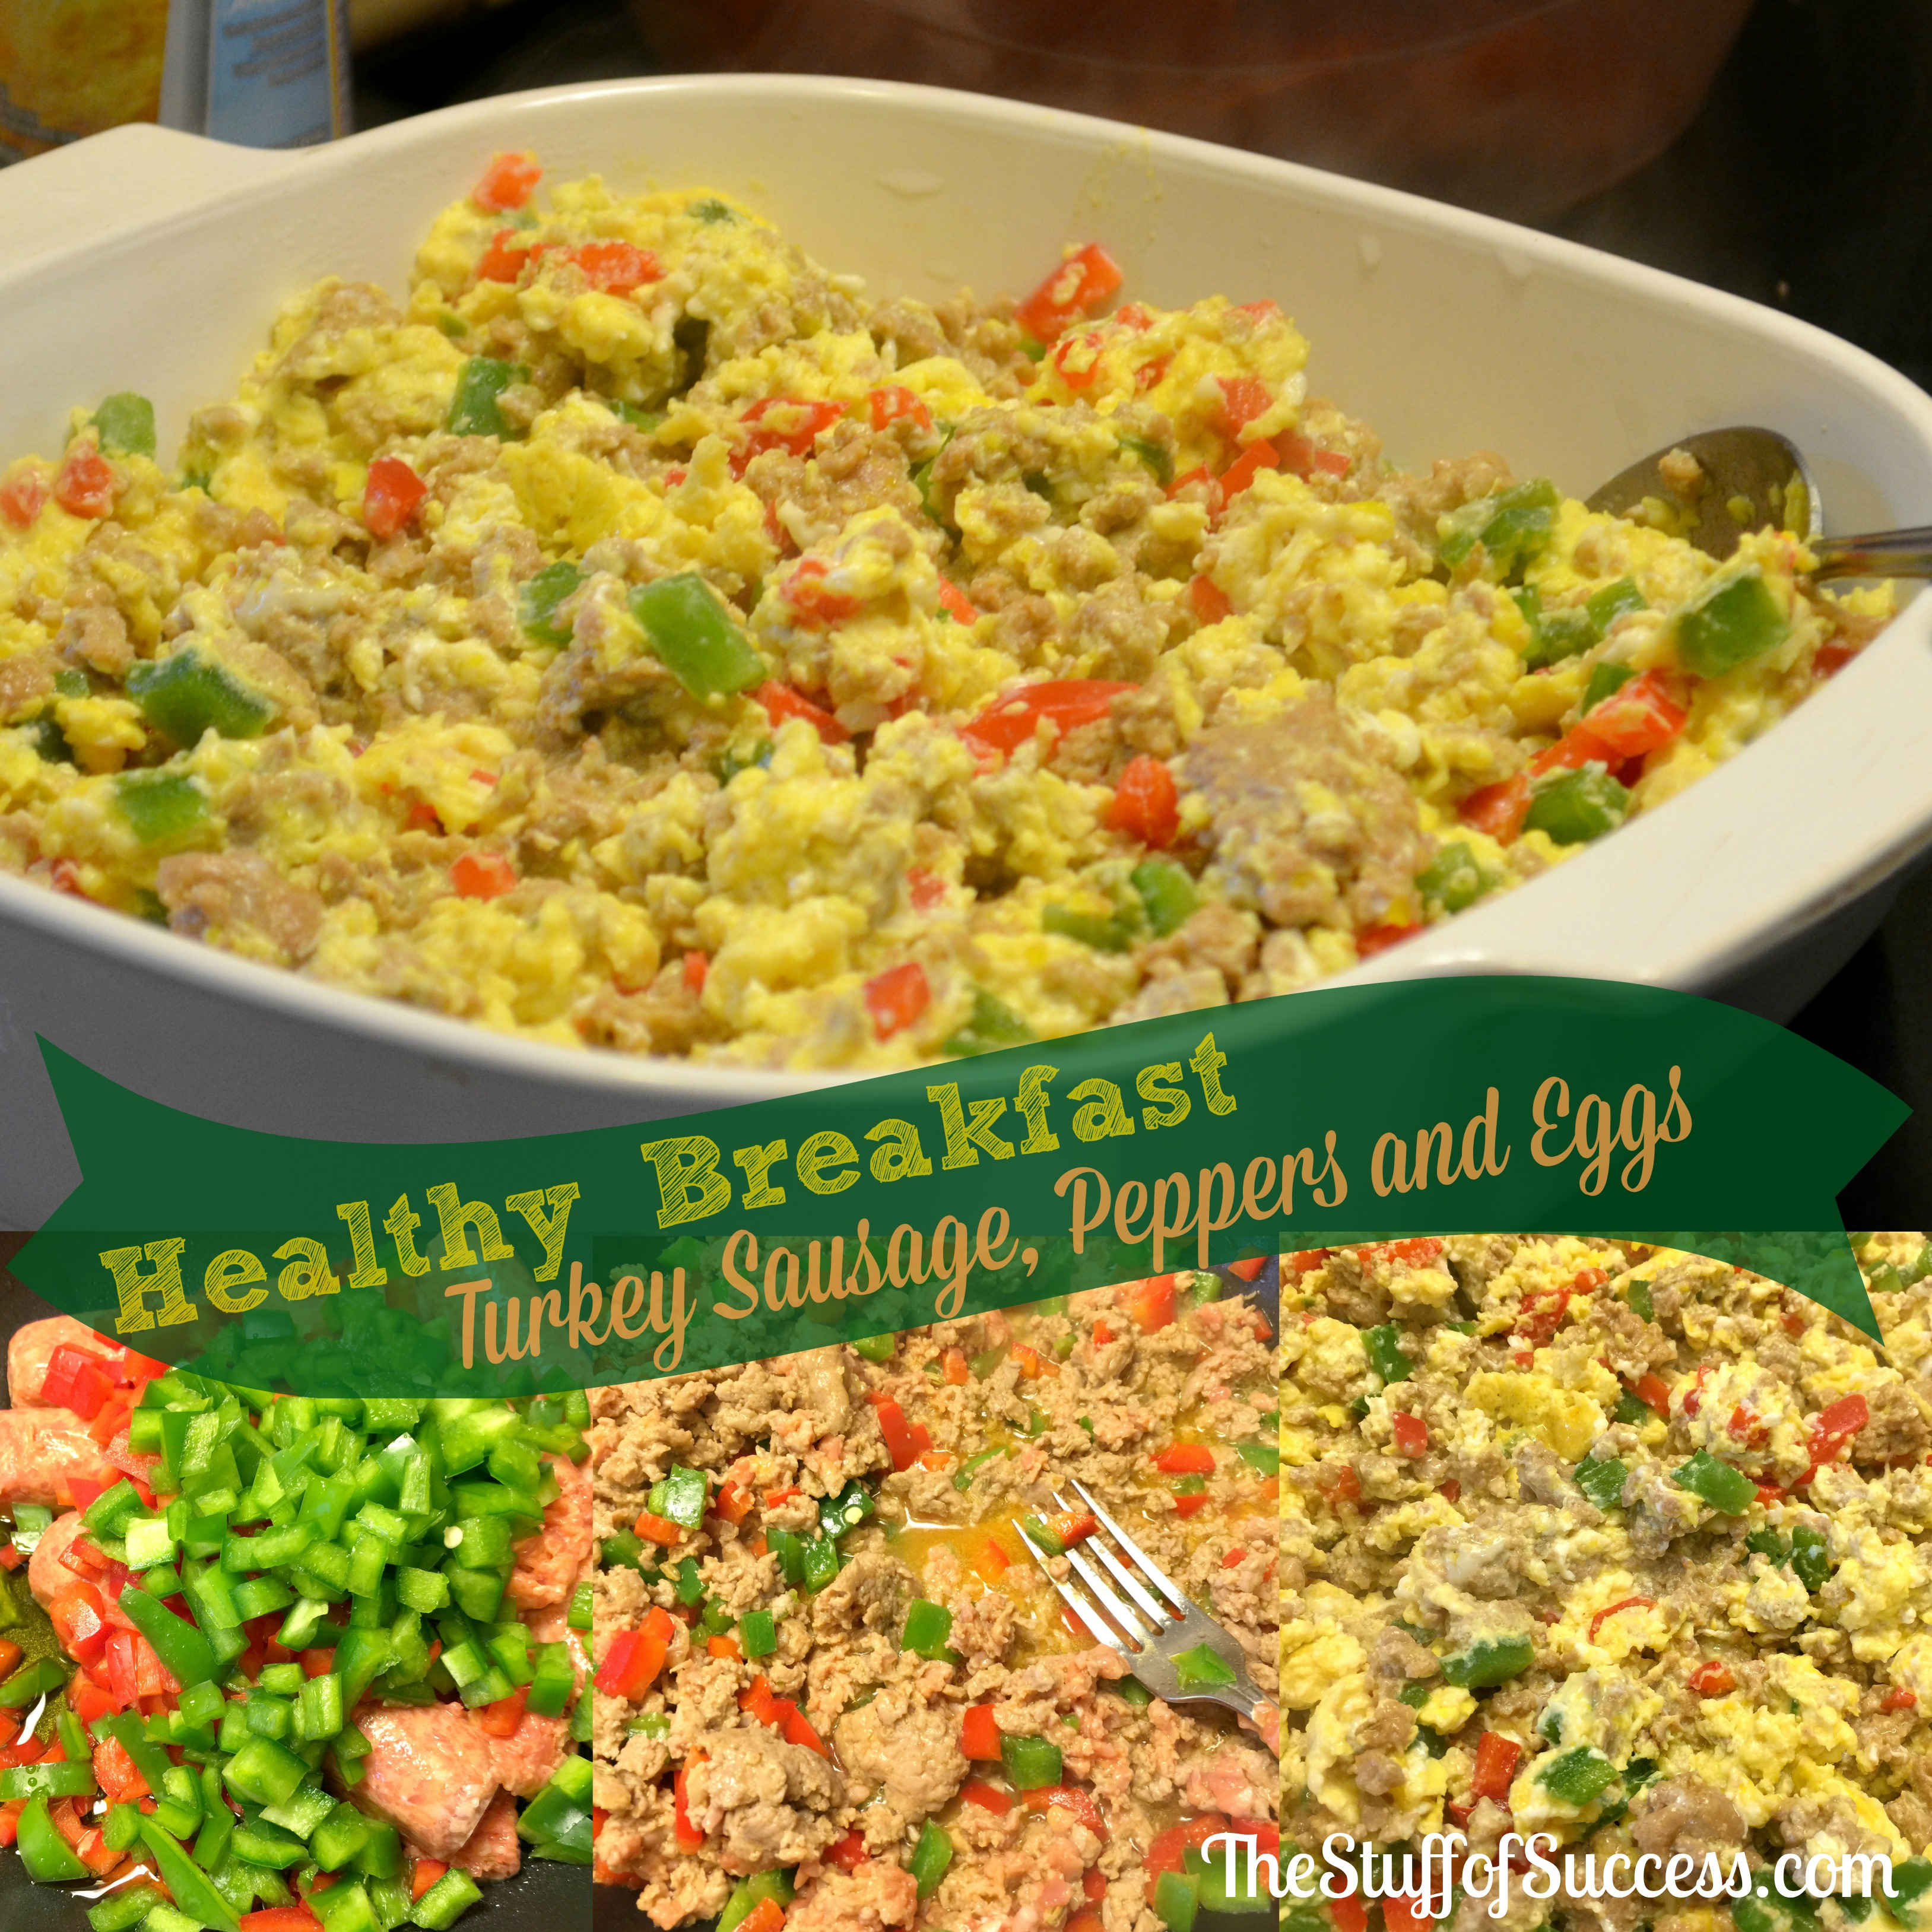 Healthy Skillet Breakfast With Turkey Sausage, Peppers And